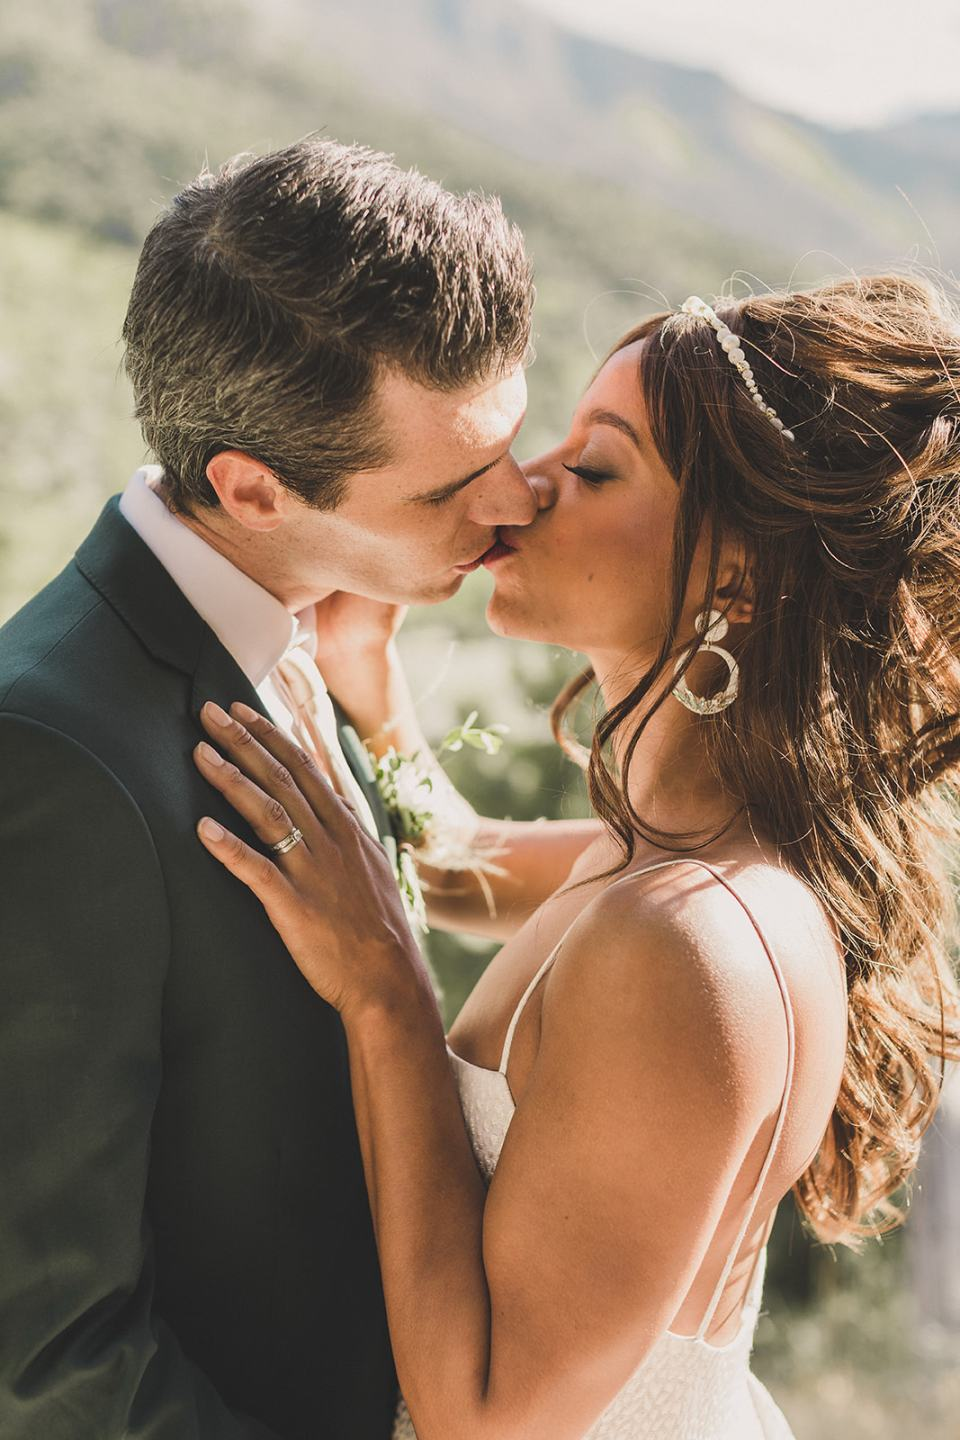 newlyweds kiss after ceremony at Resort at Mt Charleston elopement photographed by Taylor Made Photography